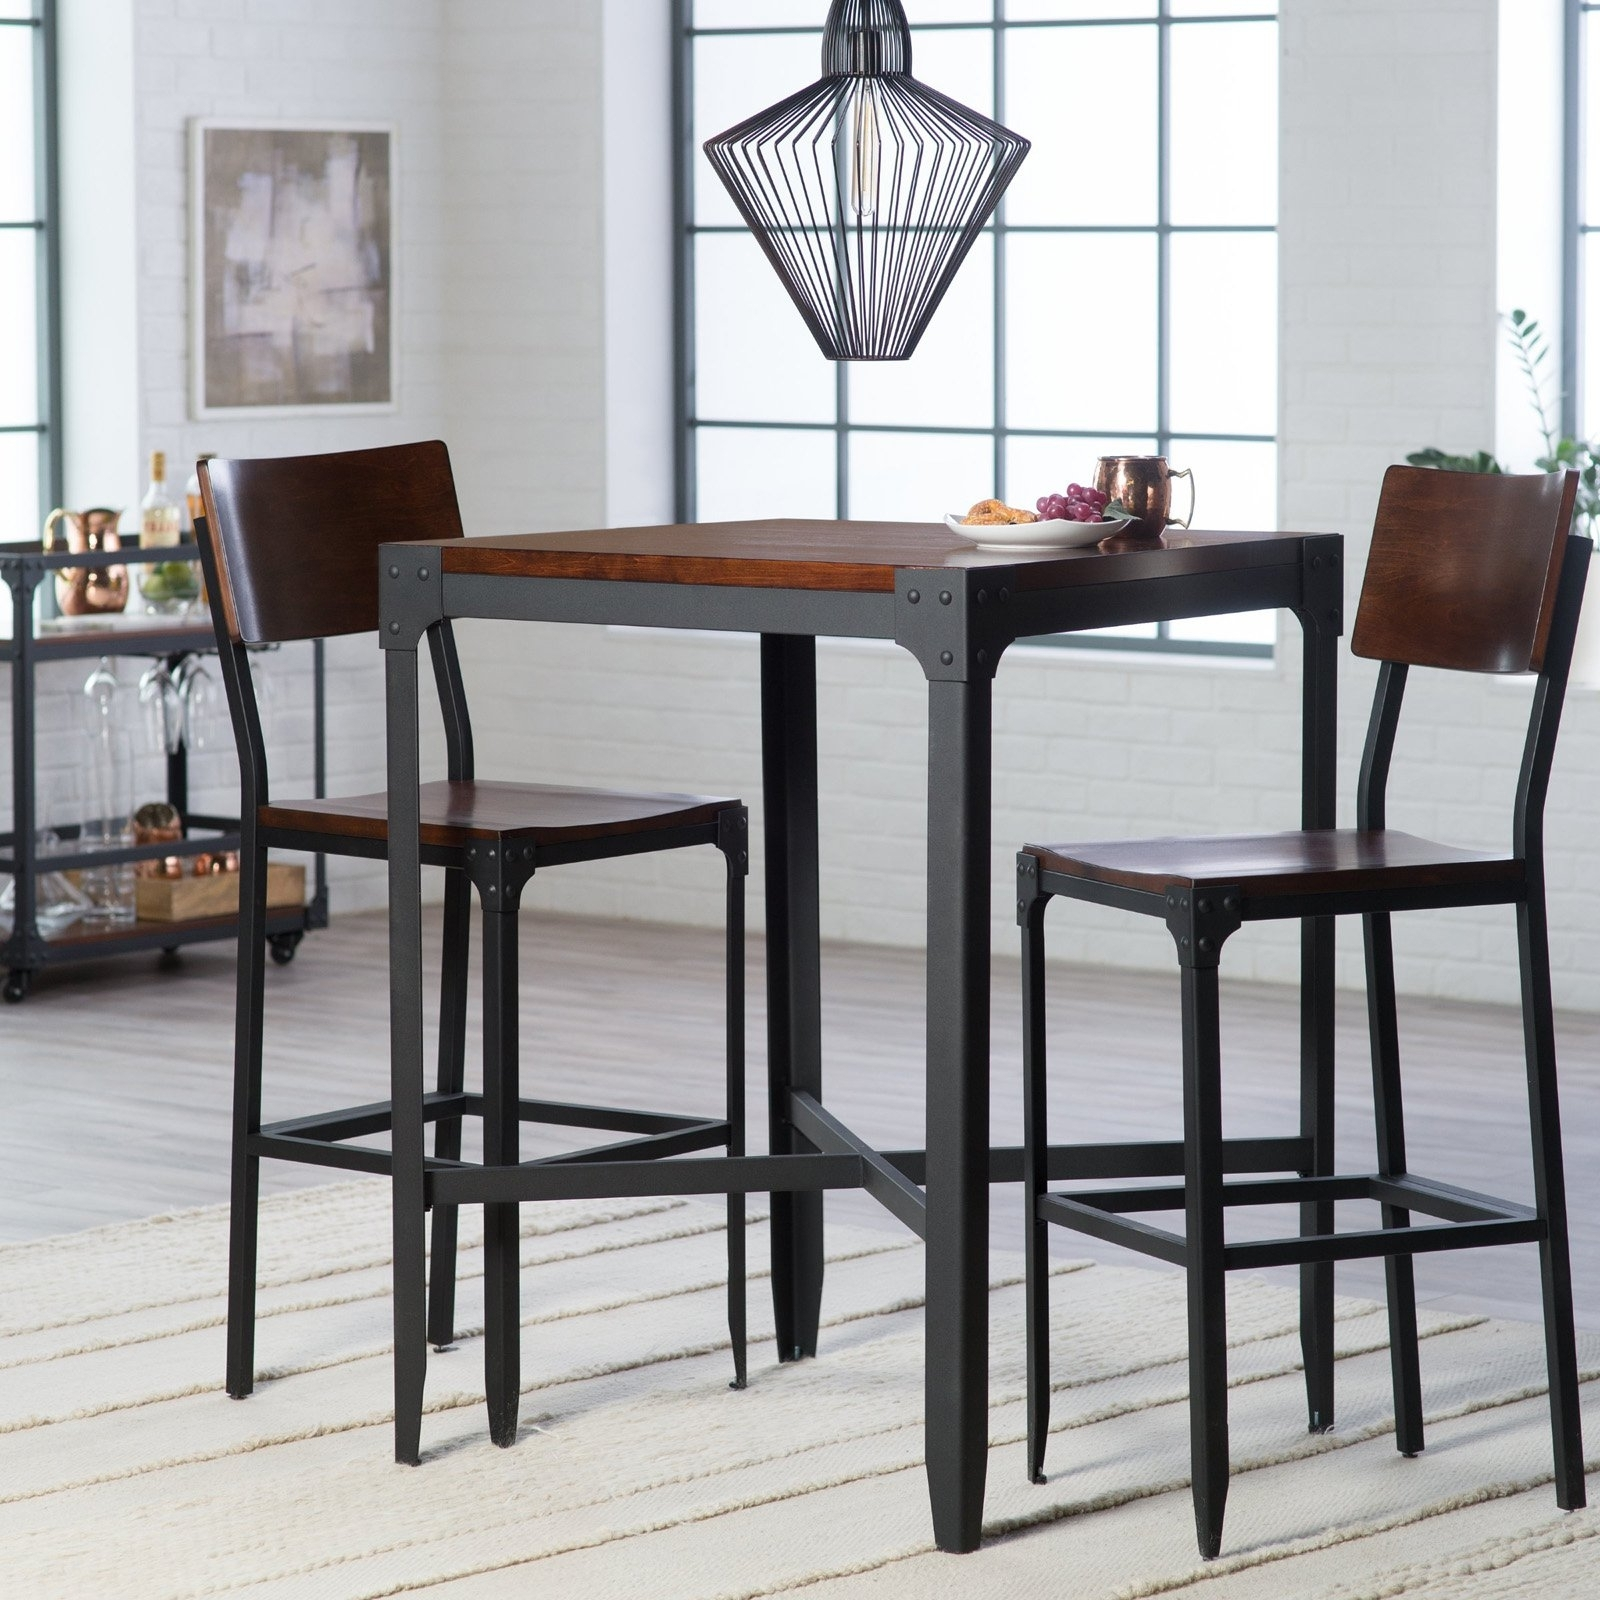 Recent 54 Bar Height Pub Table Sets, Small Dining Tables For 2 Our Top 6 Intended For Palazzo 3 Piece Dining Table Sets (Gallery 11 of 25)